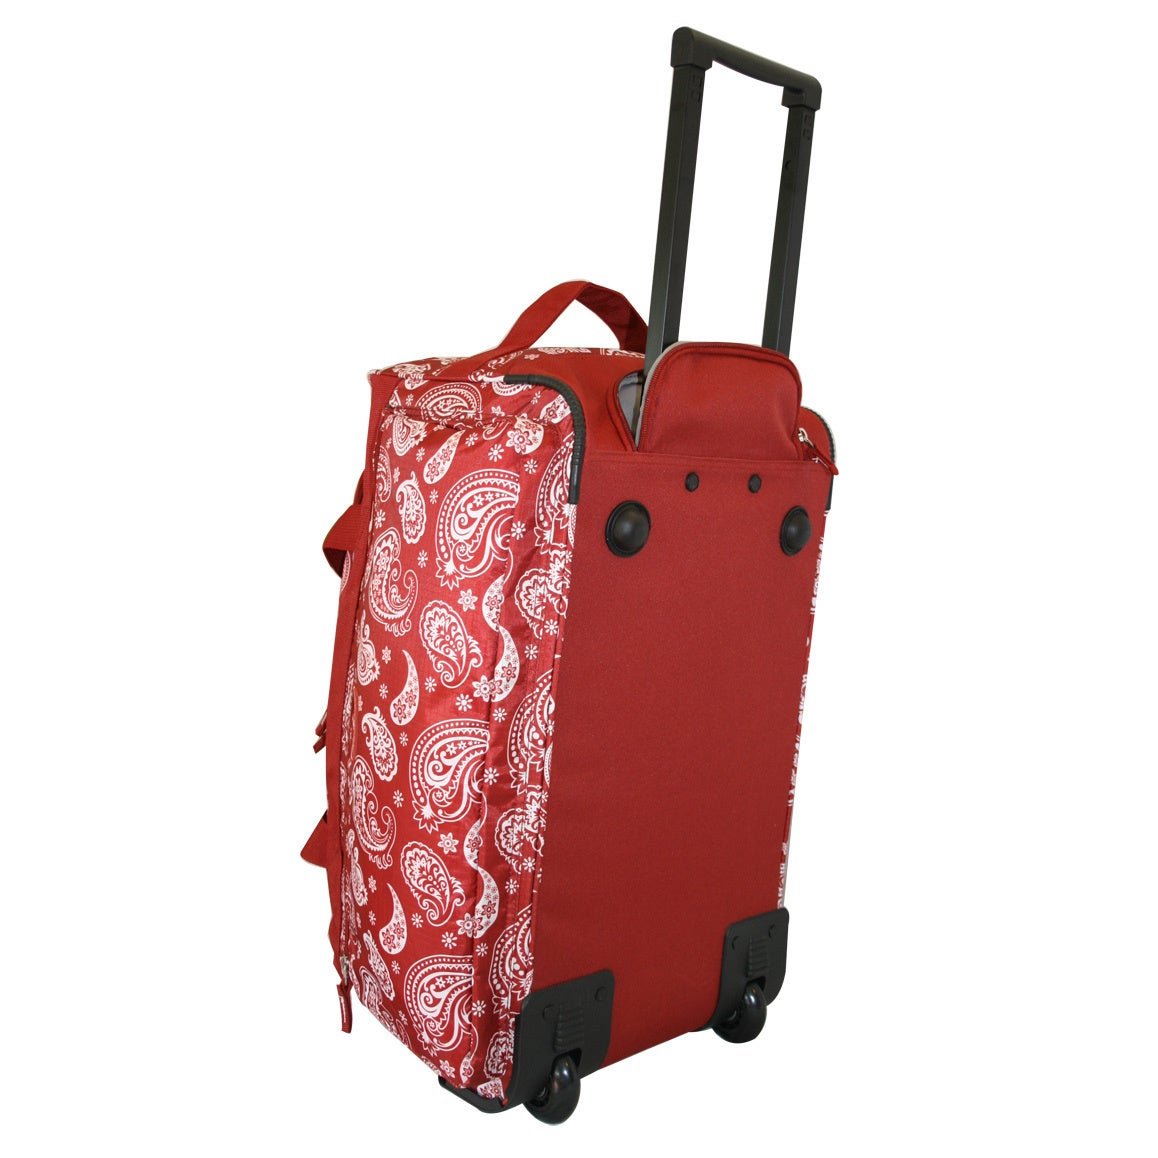 578c85d363 Shop Dadamo 21-inch Burgundy Paisley 4-pocket Rolling Carry On Upright  Duffel Bag - Free Shipping On Orders Over  45 - Overstock - 9540682